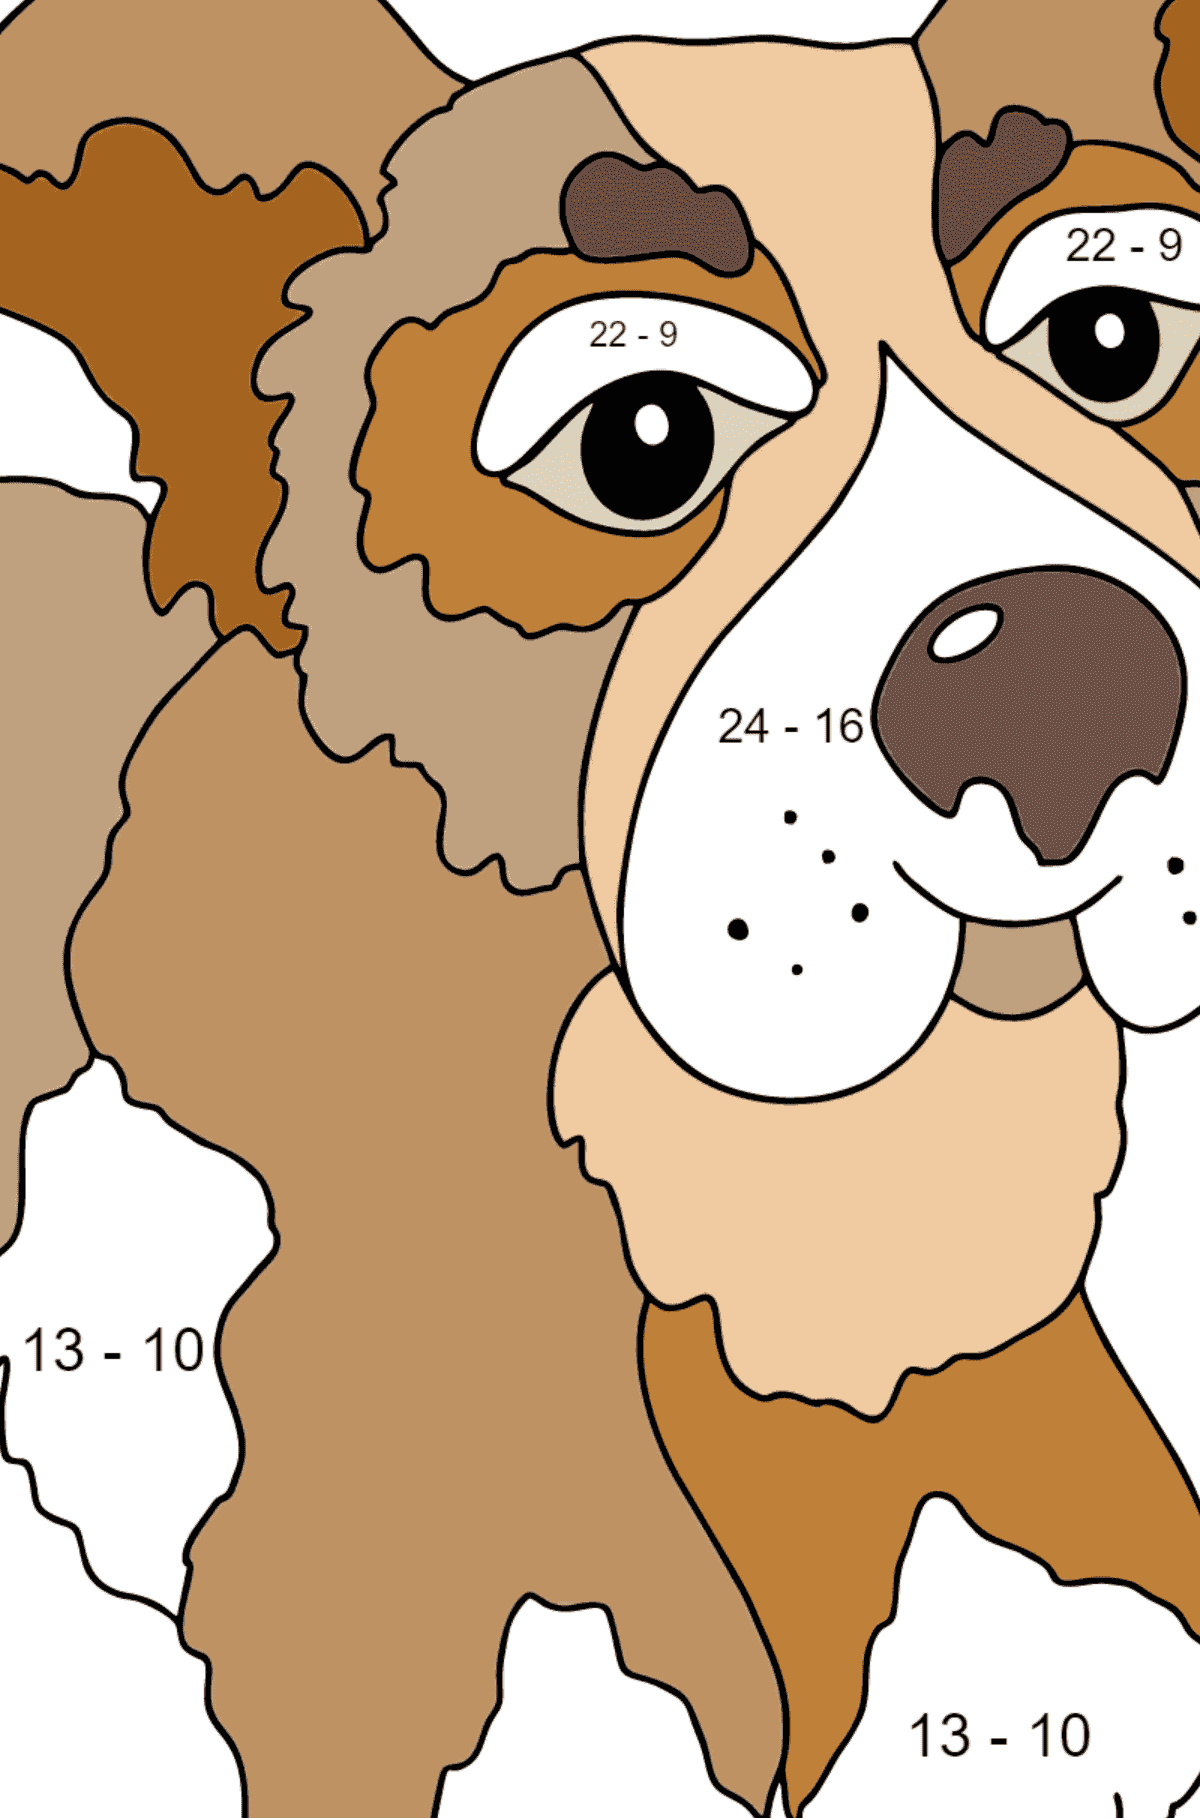 Coloring Page - A Dog is Playing with a Ball for Children  - Color by Number Substraction